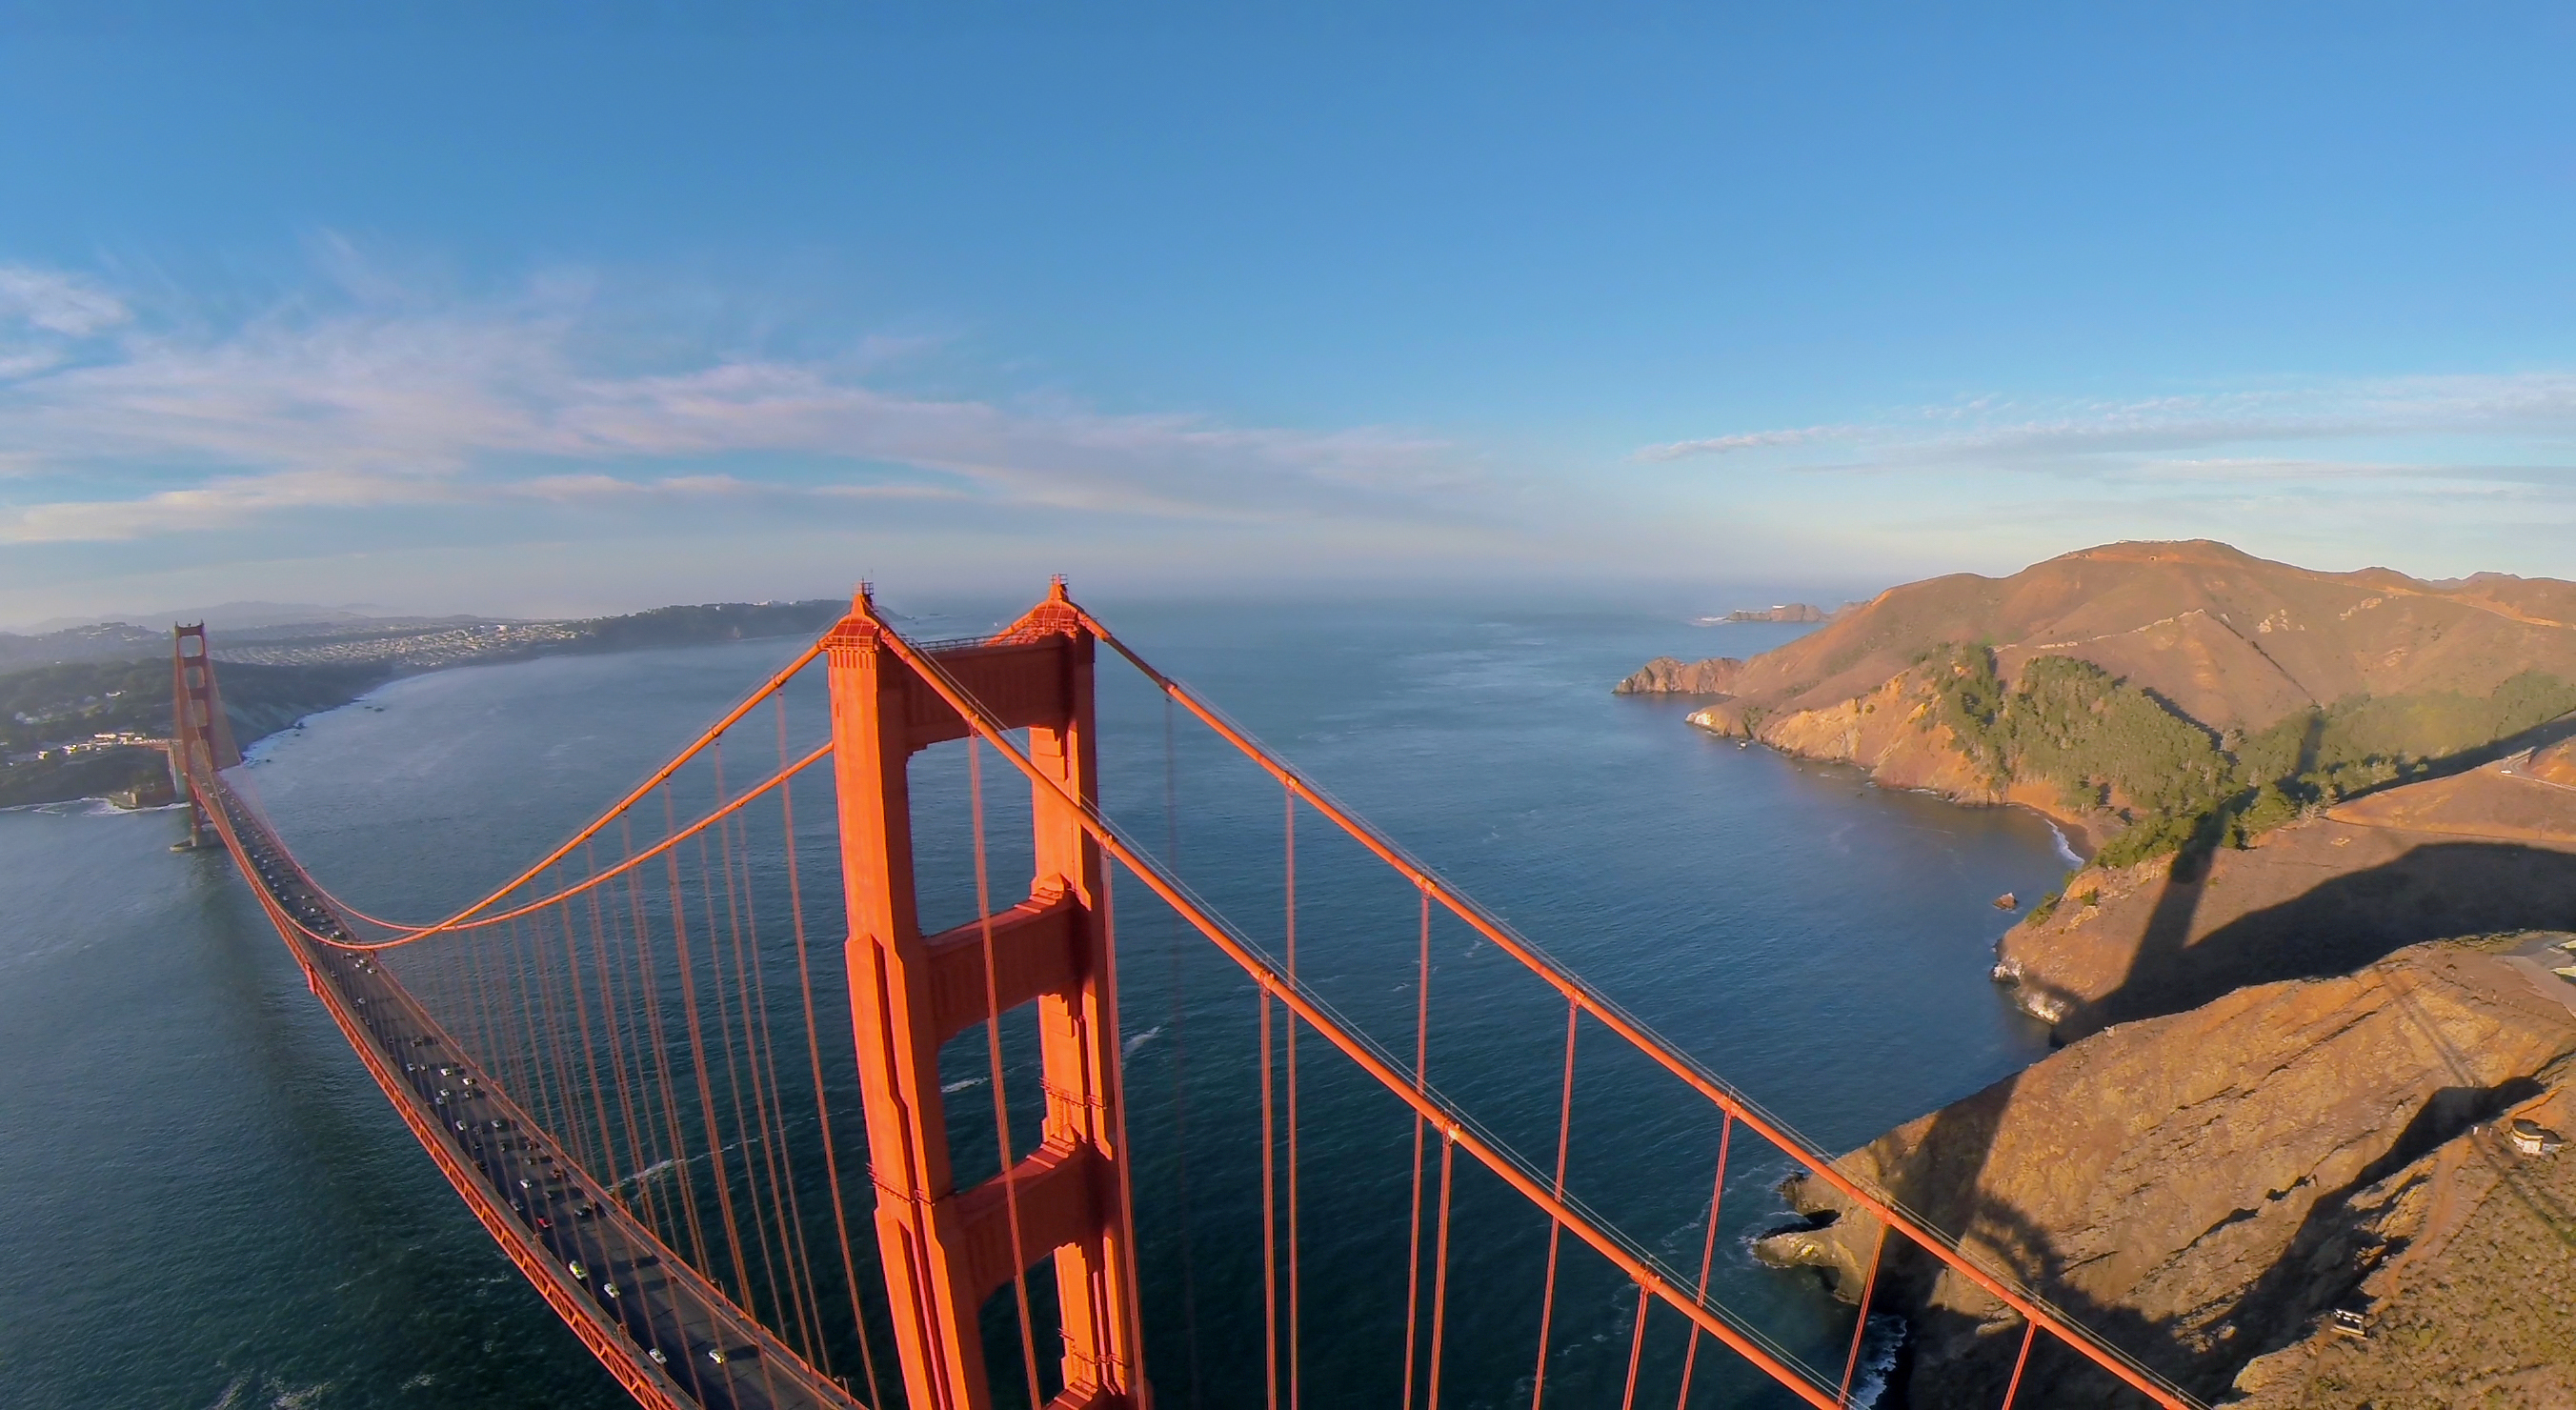 No You Cannot Fly Your Drone At The Golden Gate Bridge